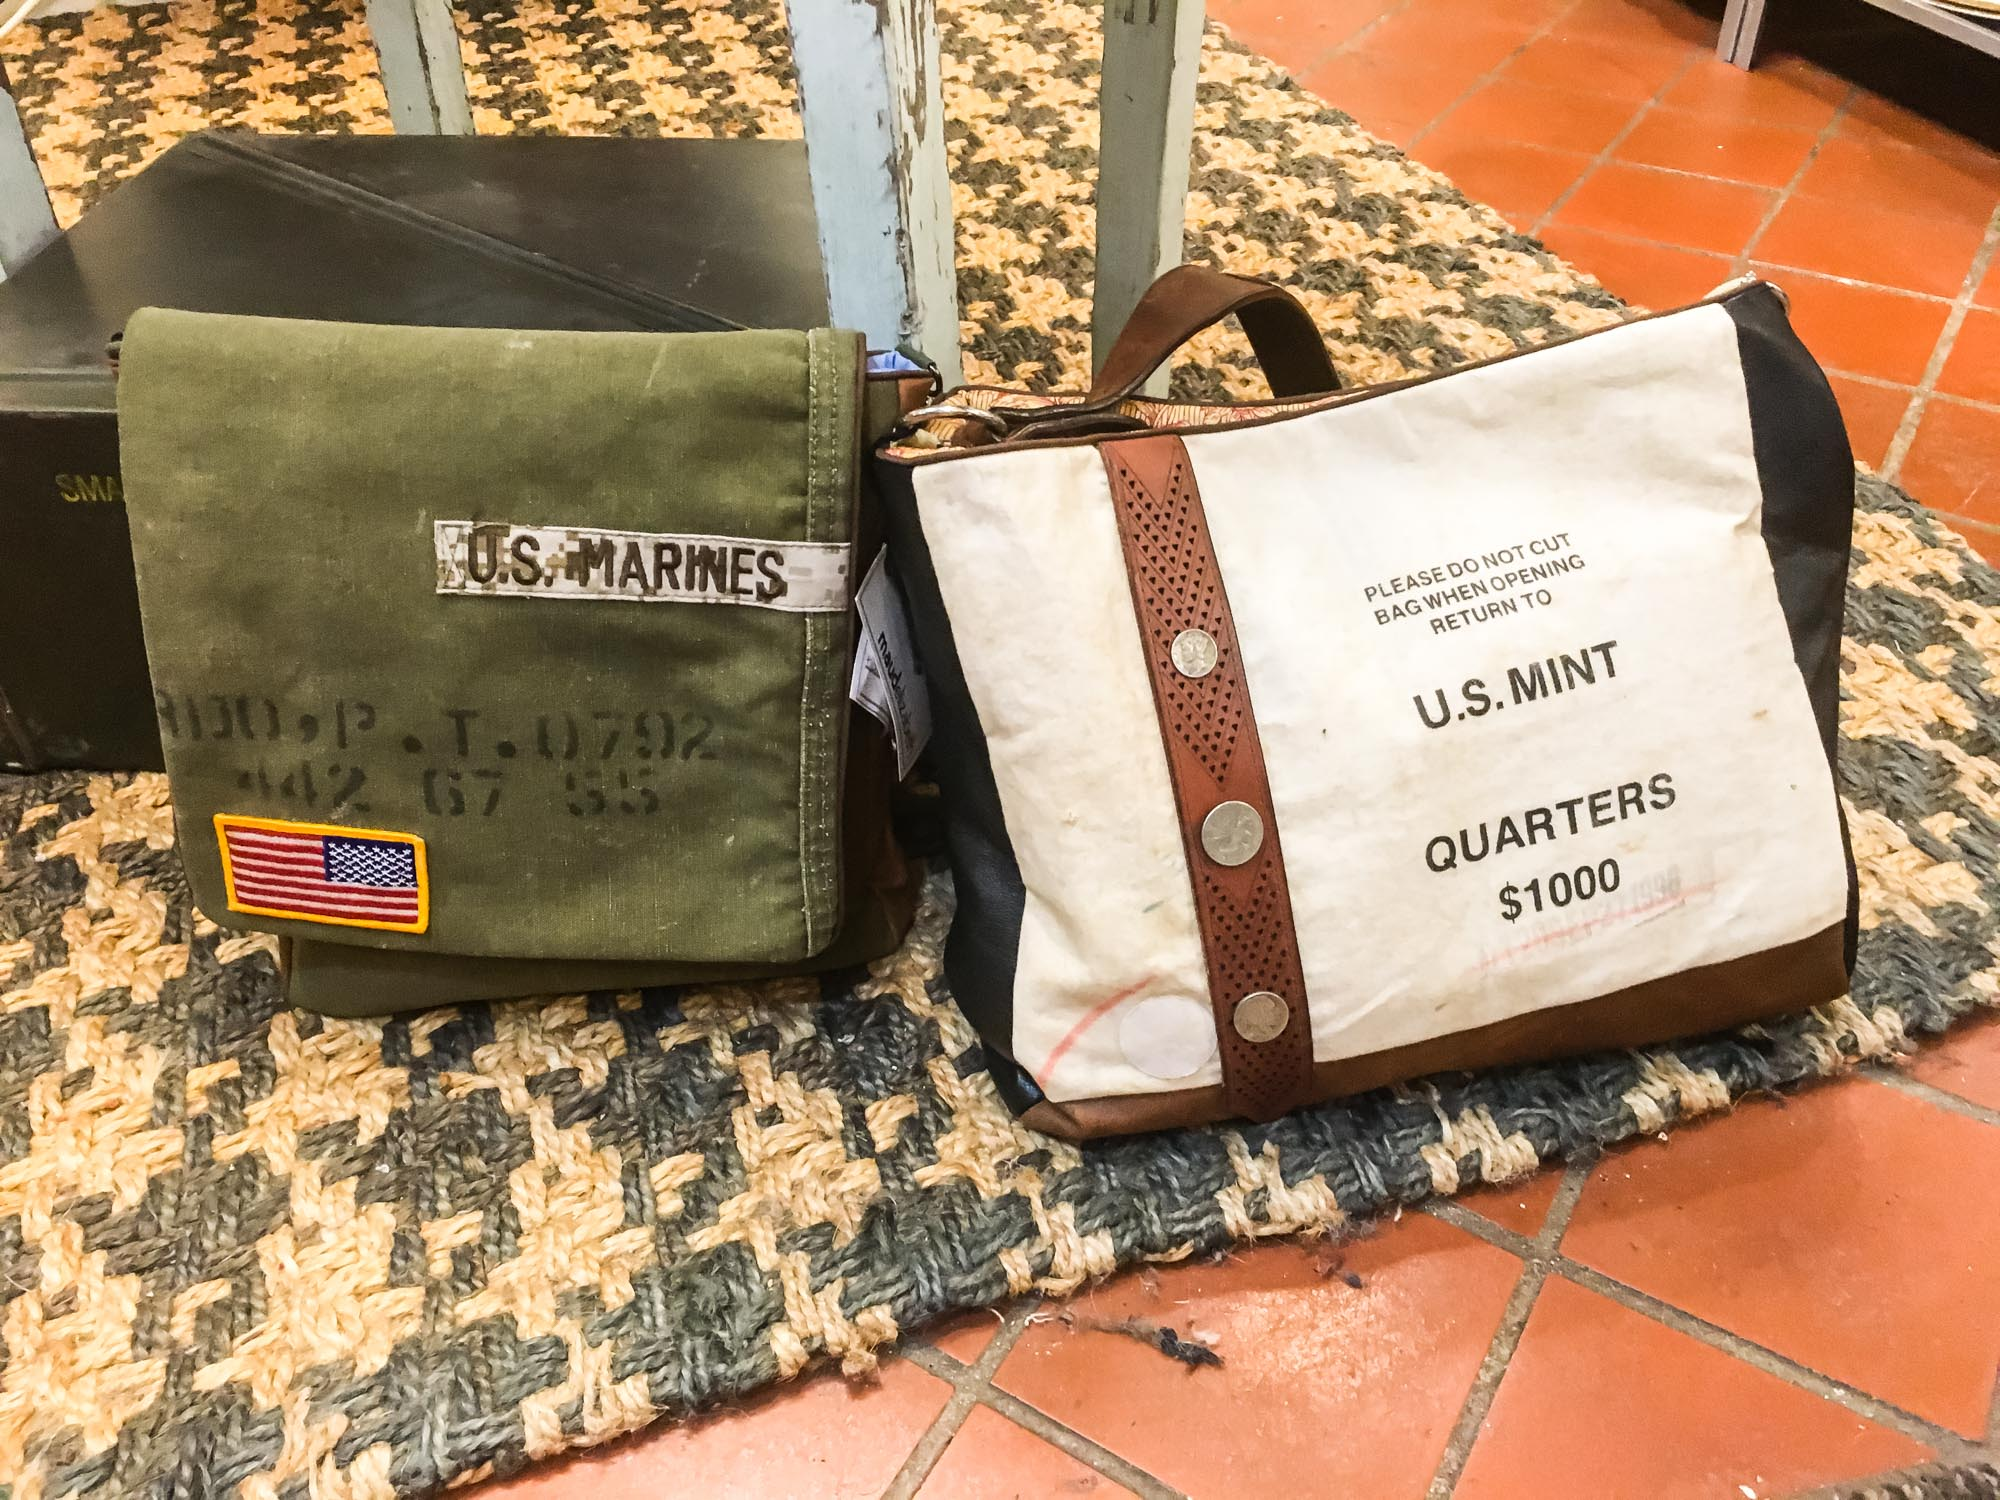 I'm going back for one of these bags. I love the Marines one, since  my hubs is a former Marine , but I'm thinking the US Mint one is more versatile.